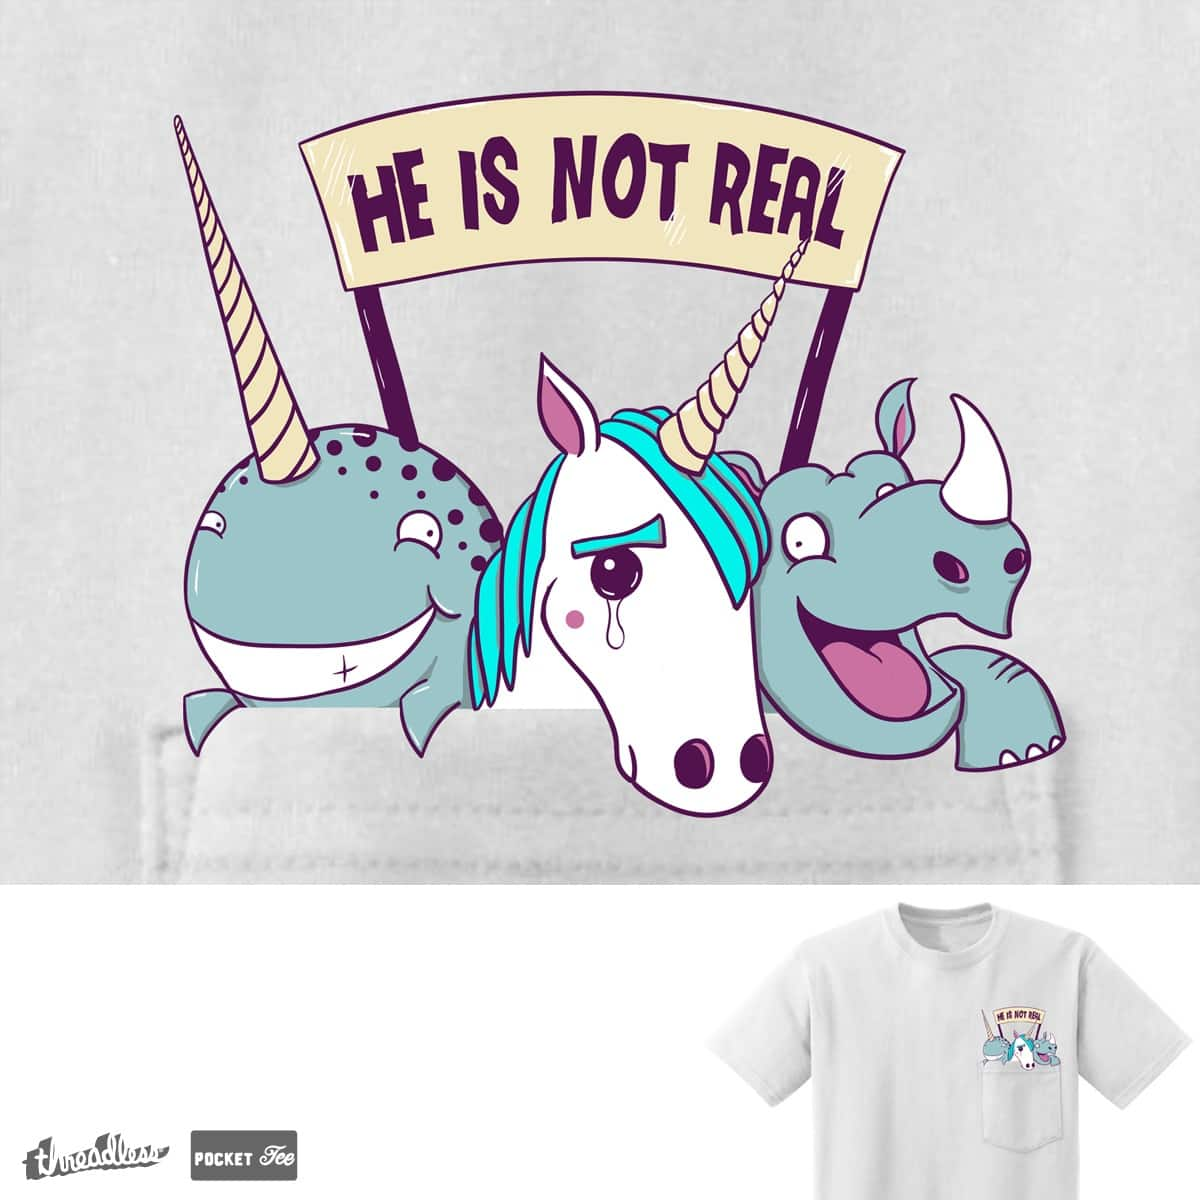 He is not real! by pijaczaj on Threadless